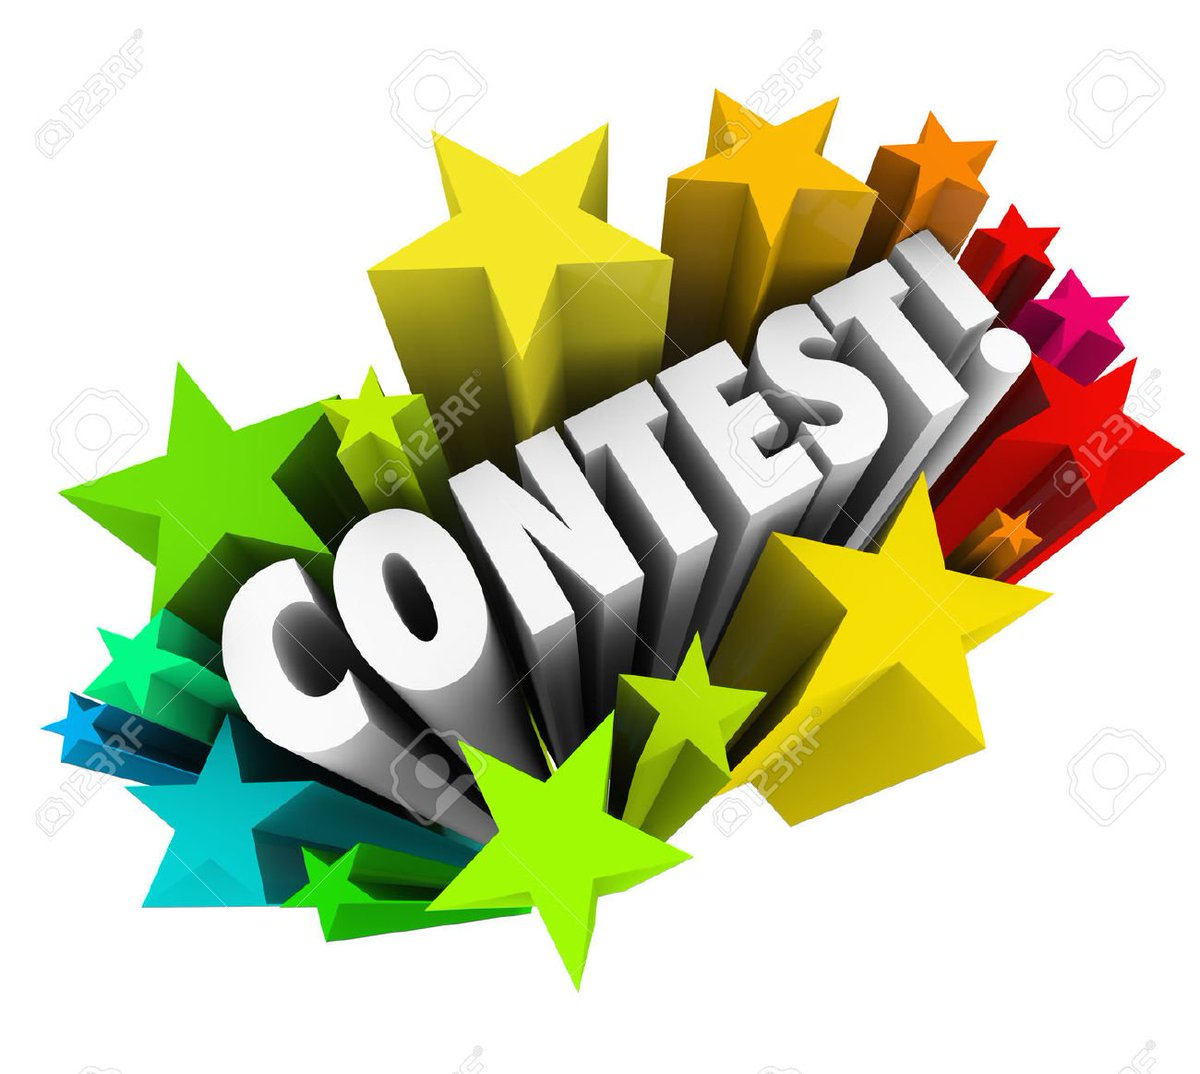 Be the 2K follower #win a #surprise #followus #FolloForFolloBack @EtsyRetweeter @etsygiveaways@ipromotable #competition @ContestBasket<br>http://pic.twitter.com/sMeiFrMc6B